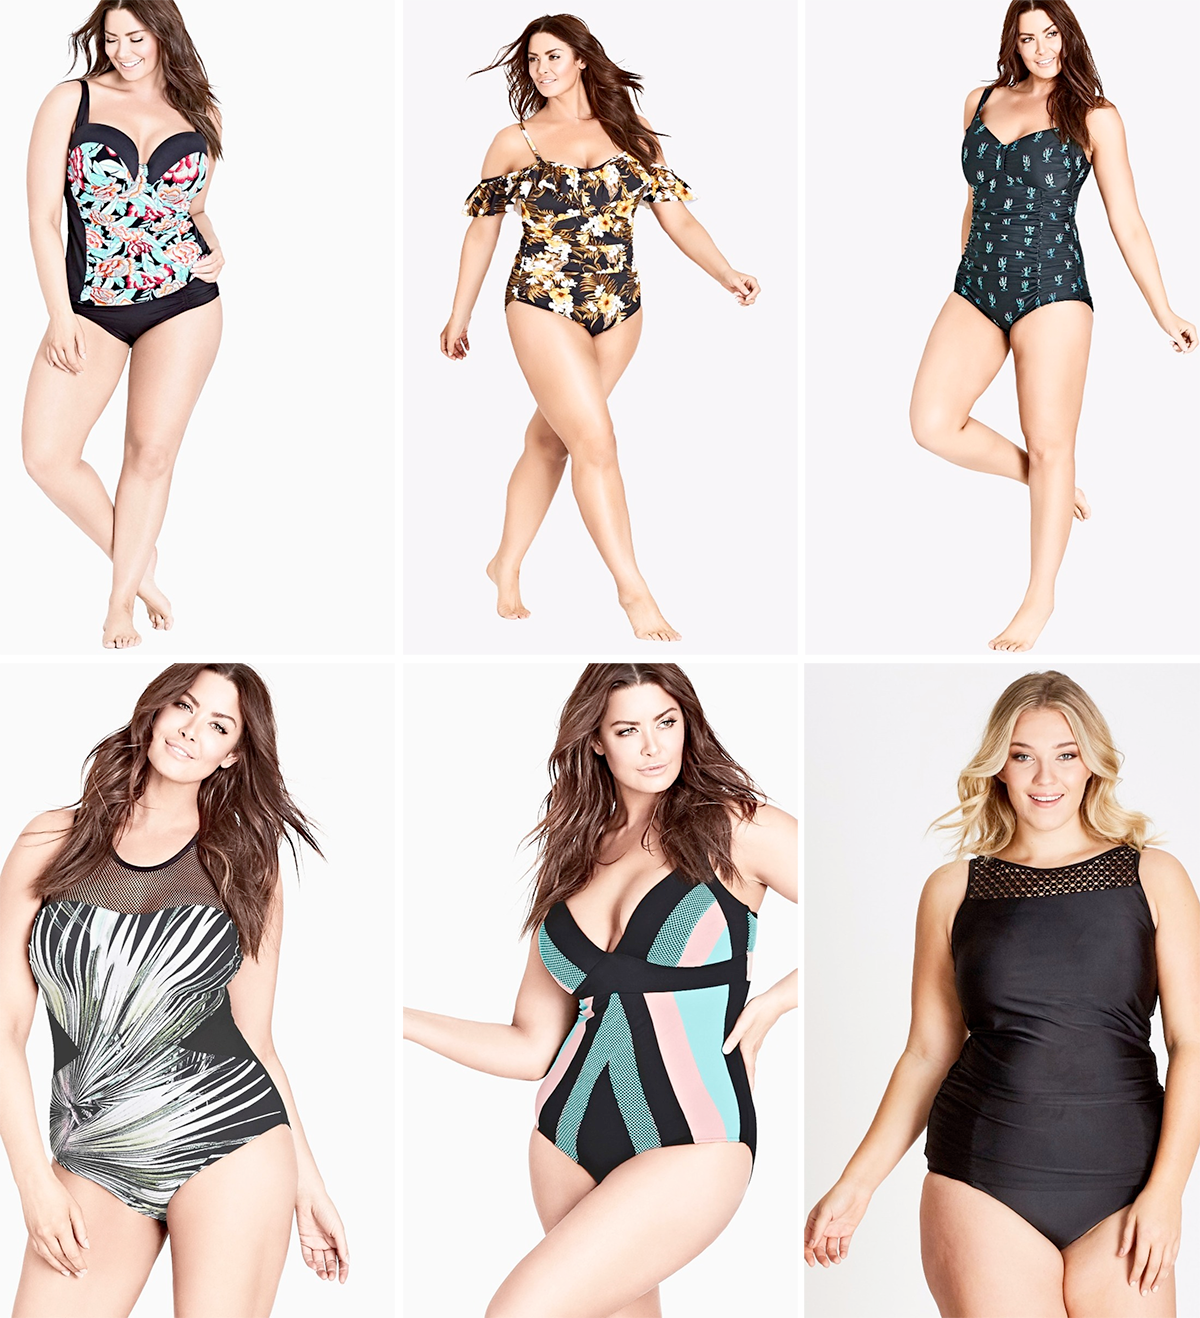 Plus size swimsuit special 2017 // Sunset Underwire Tank, $109.99 from City Chic | Aruba Frill One Piece Swimsuit, $139.99 from City Chic | Cute Cactus One Piece Swimsuit, $109.99 from City Chic | Foliage One Piece Swimsuit, $149.99 from City Chic | Summer Splice One Piece Swimsuit, $109.99 from City Chic | Crochet Yoke Tankini, $54.99 from Autograph